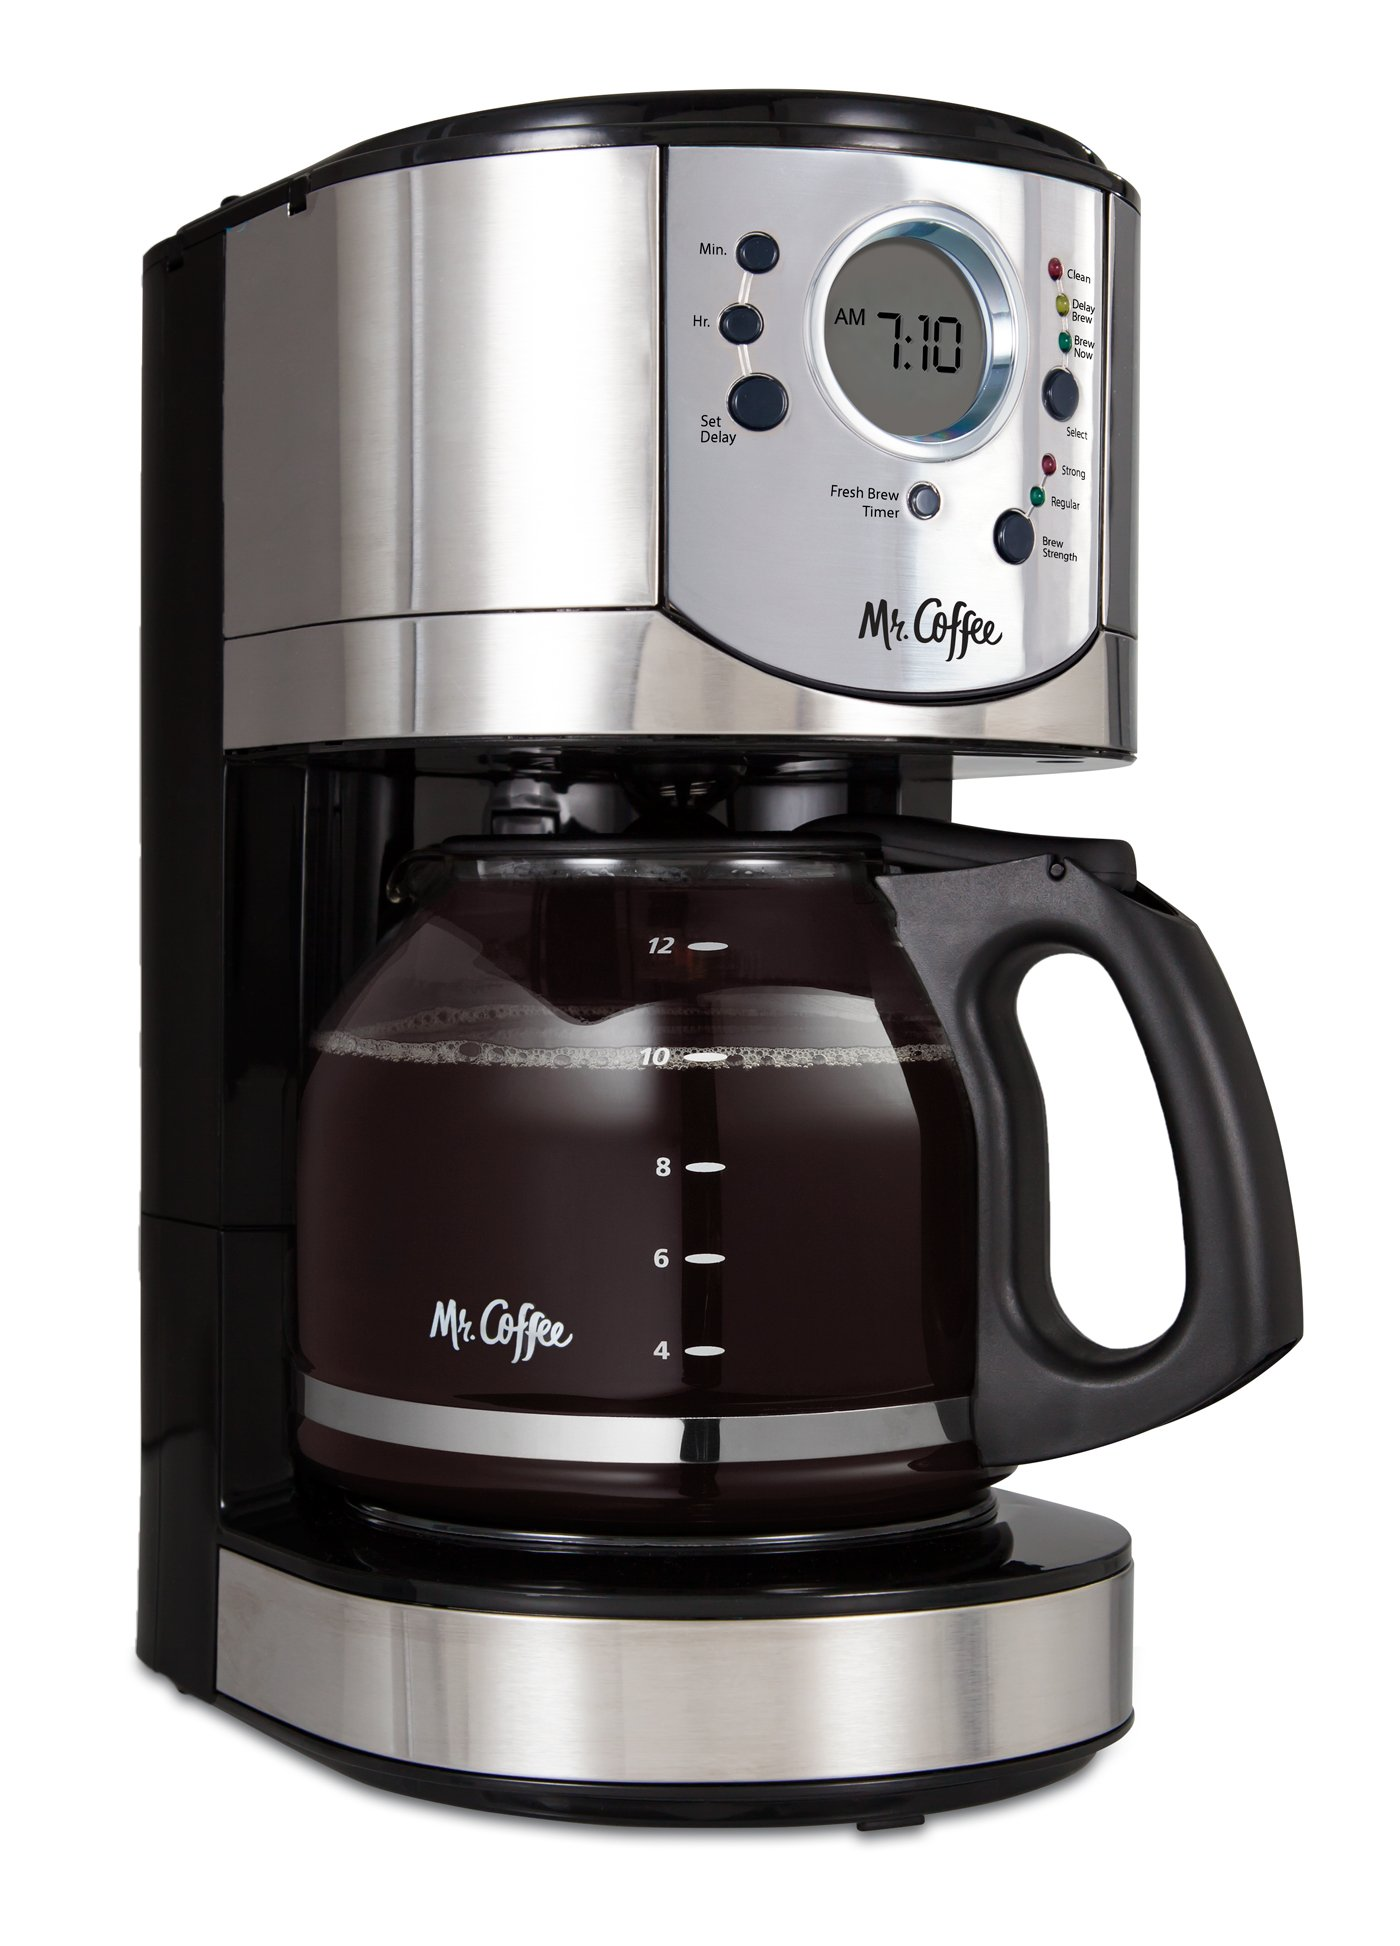 Mr. Coffee 12-Cup Programmable Coffee Maker with Brew Strength Selector by Mr. Coffee (Image #1)